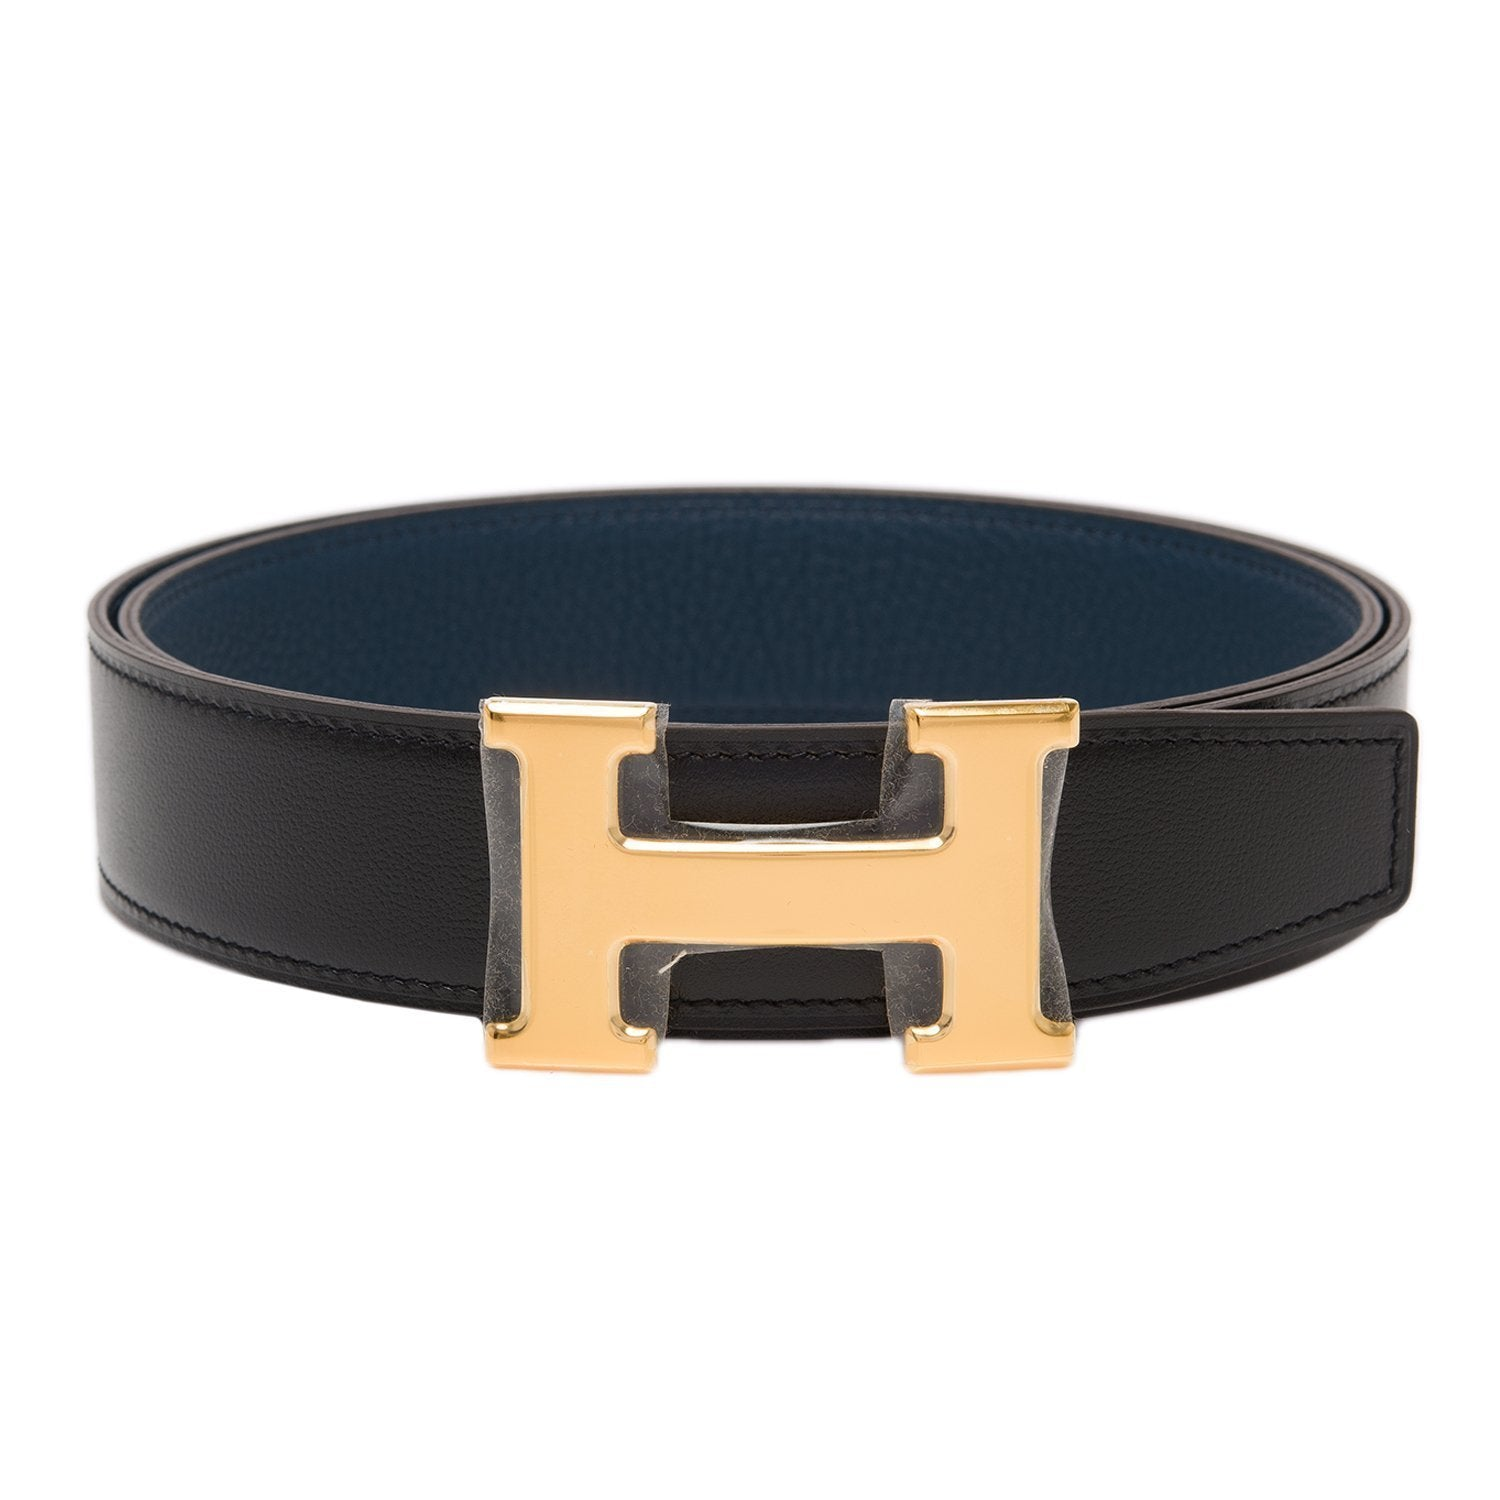 b577ed8ed4d9 Hermes 32mm Reversible Black Colvert Constance H Belt 90cm Gold Buckle